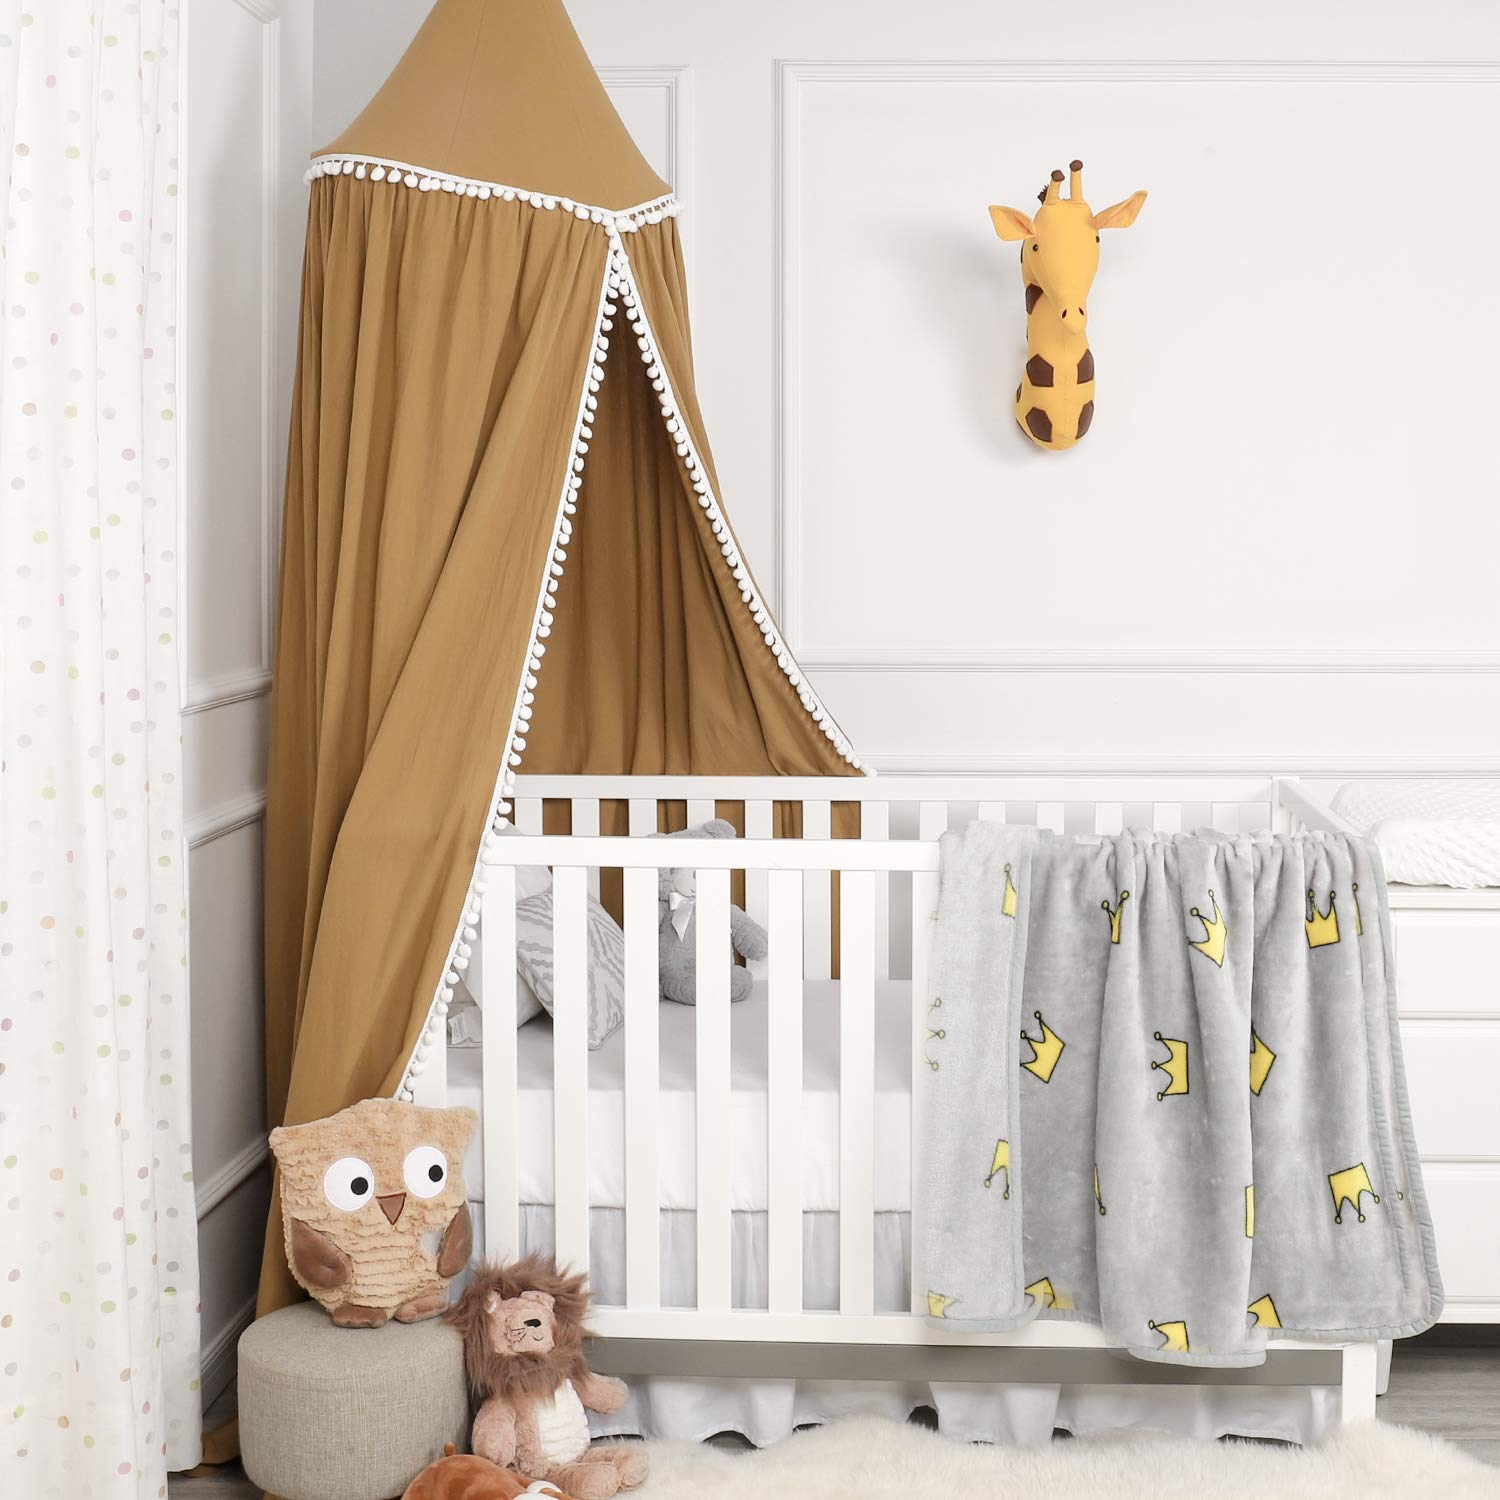 TILLYOU Baby Bed Canopy with Pompoms, 100% Cotton Canopy for Crib and Toddler Bed, Hanging Game Tent for Kids, Mosquito Net Nursery Play Room Decor, Burnt Sugar